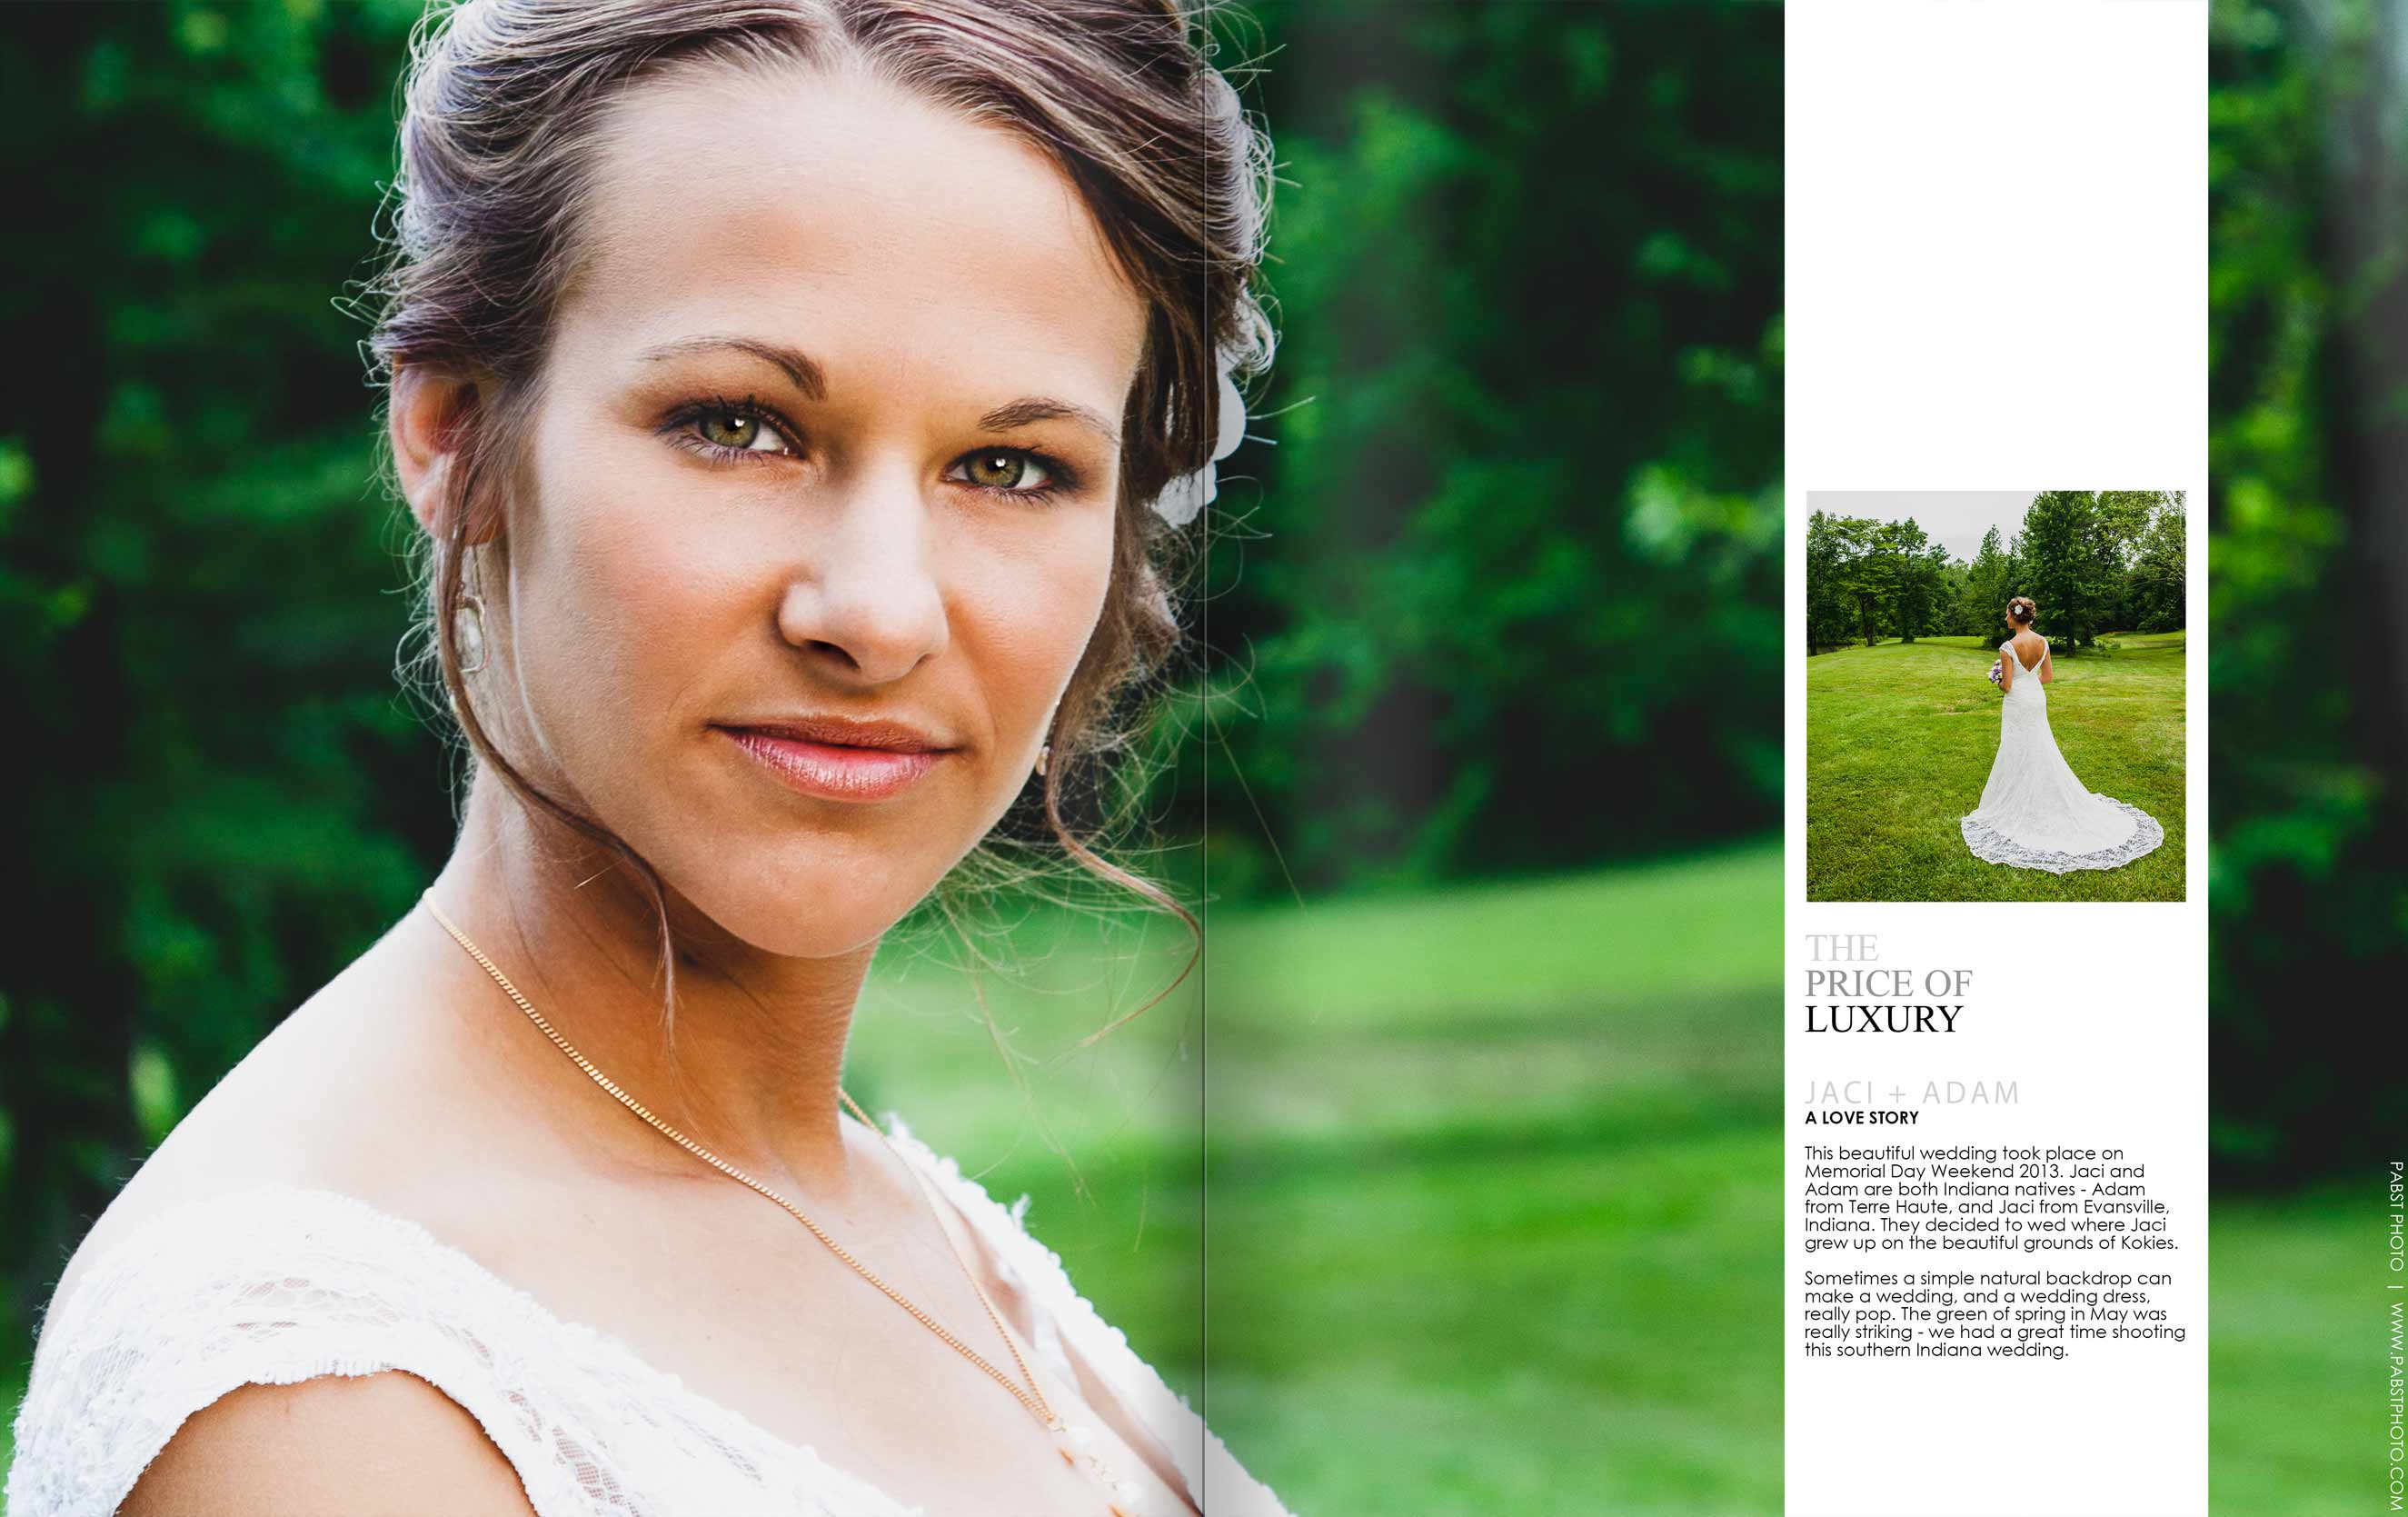 evansville-indiana-wedding-photography-fashion-high-end-01